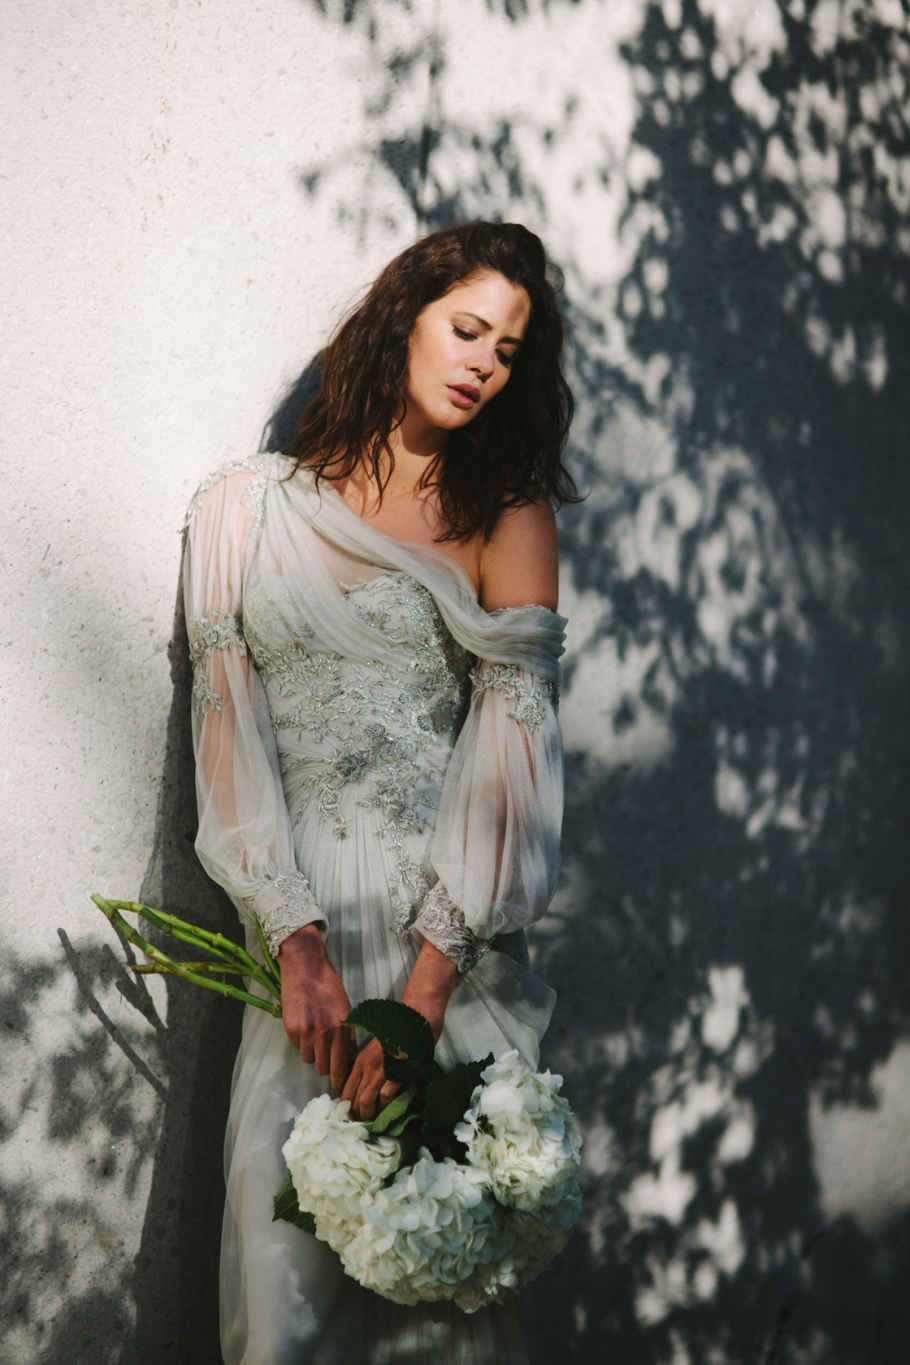 The LANE Editorial / Stealing Beauty